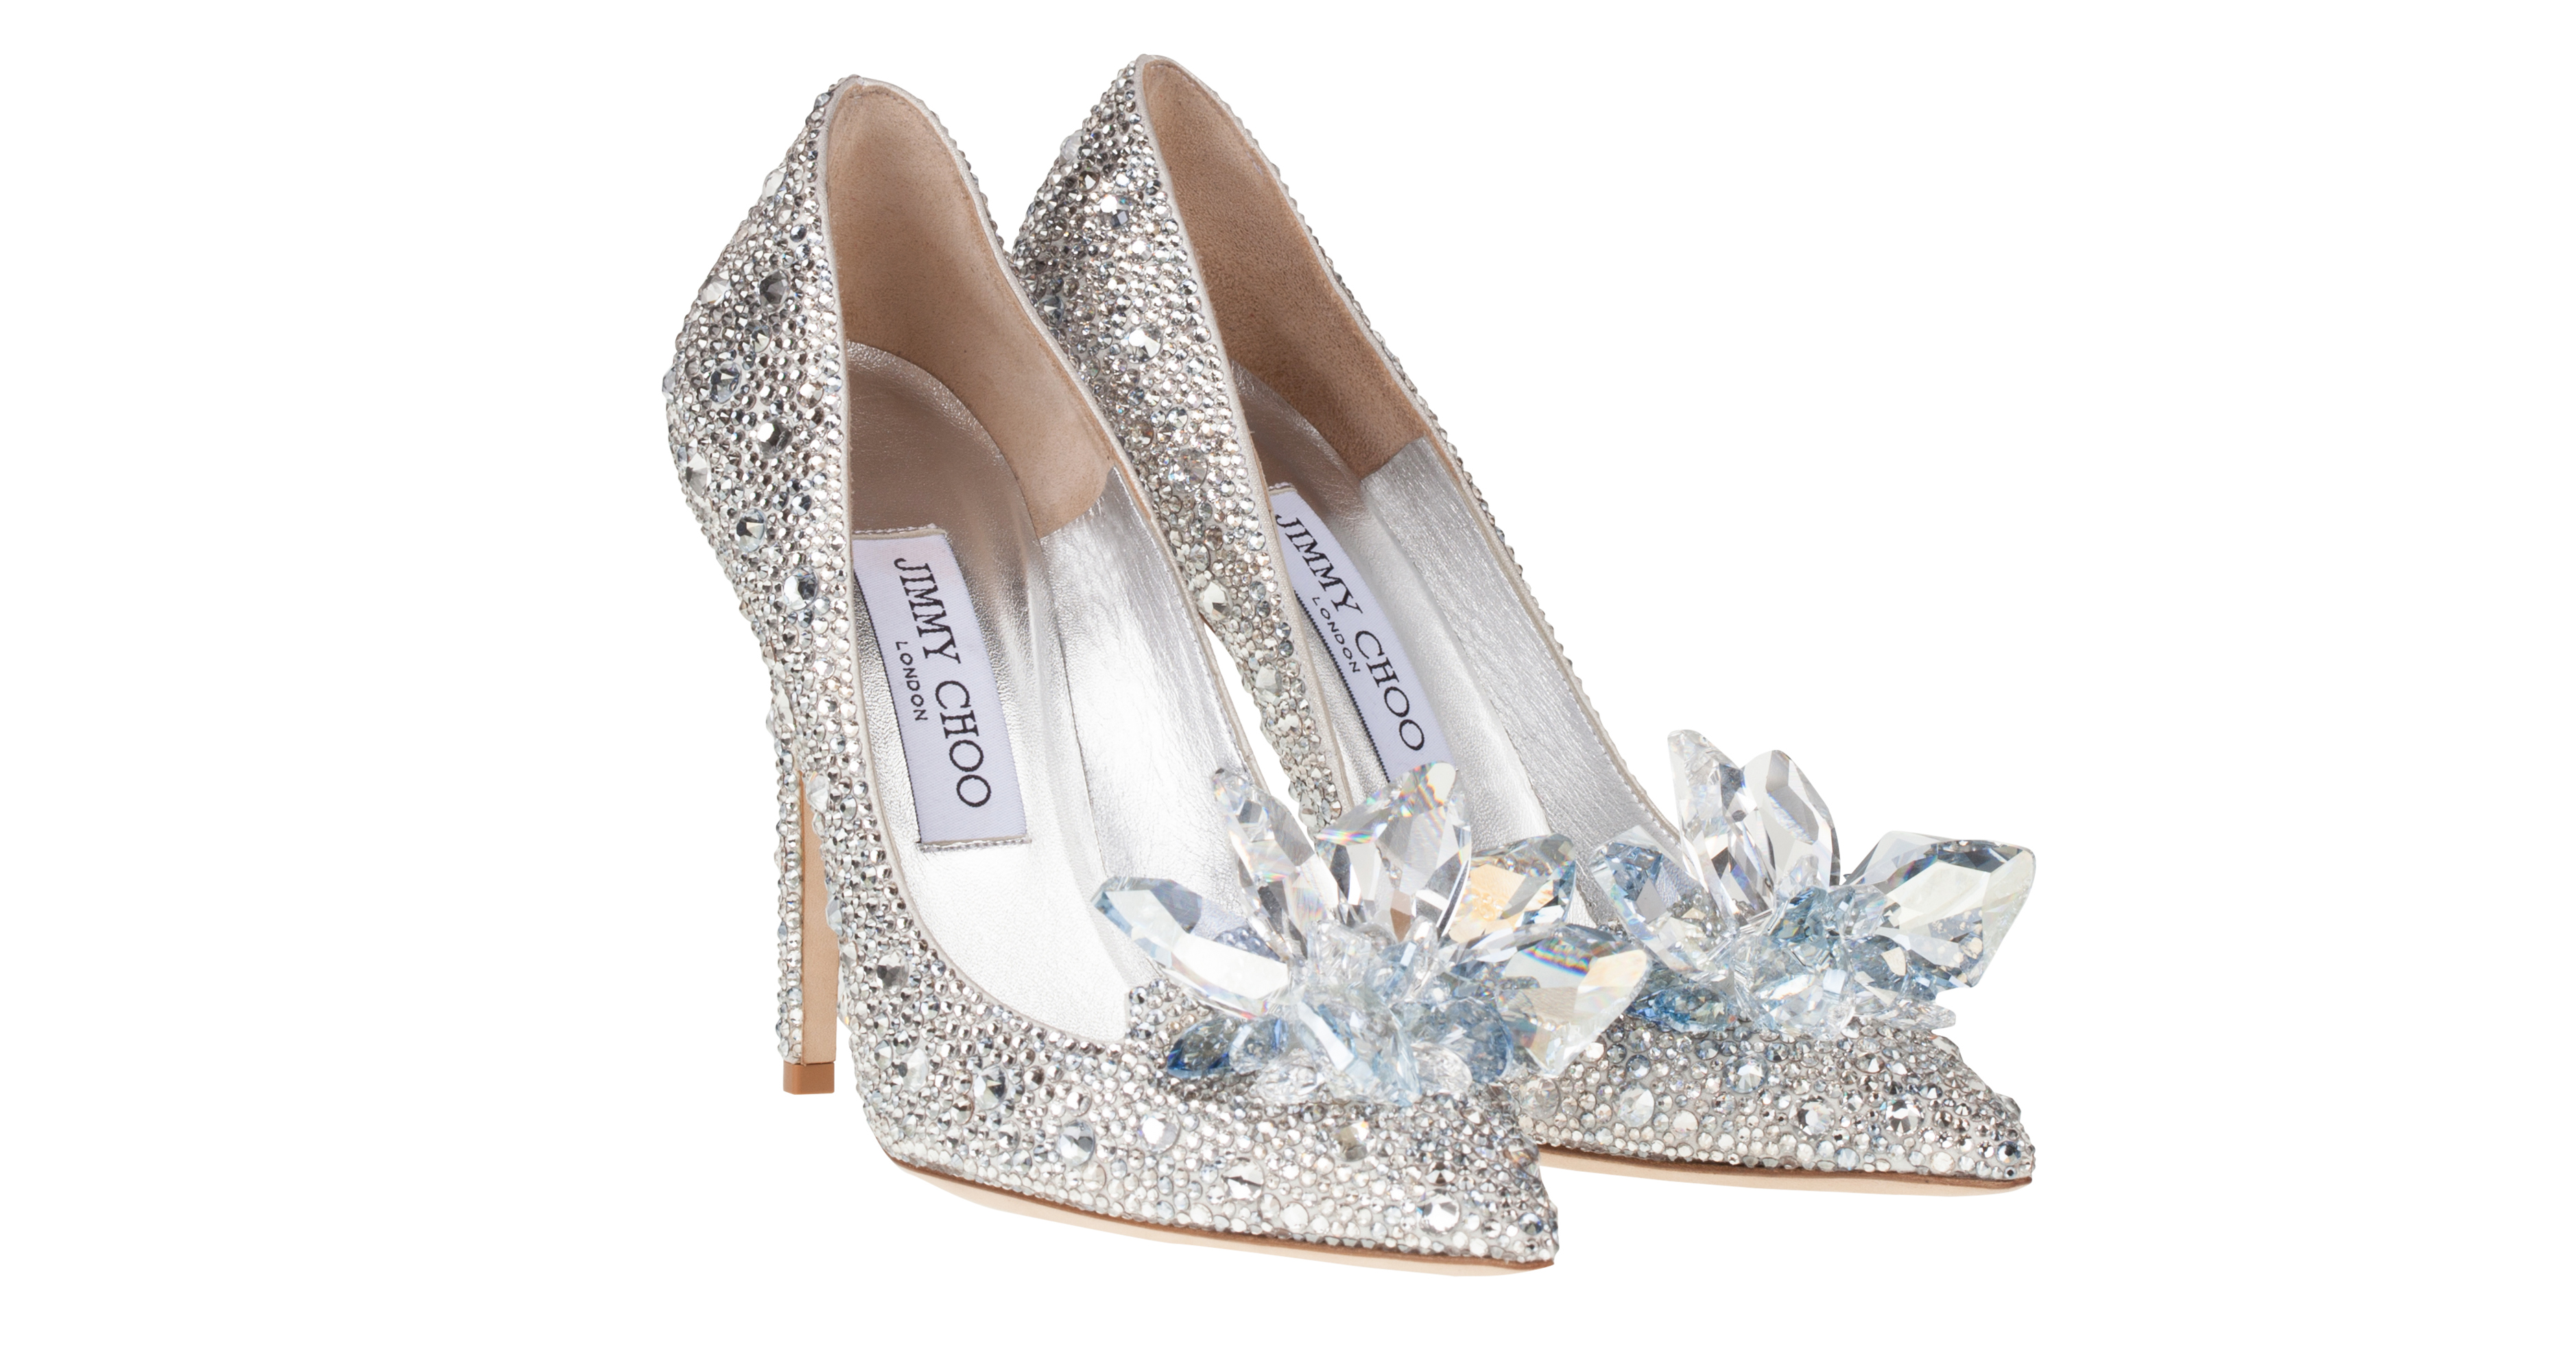 Jimmy Choo creates modern design Cinderella Shoe worthy of Fairy tale Dubai Luxxu's designs inspired by Dubai feature final Dubai Luxxu's designs inspired by Dubai feature final